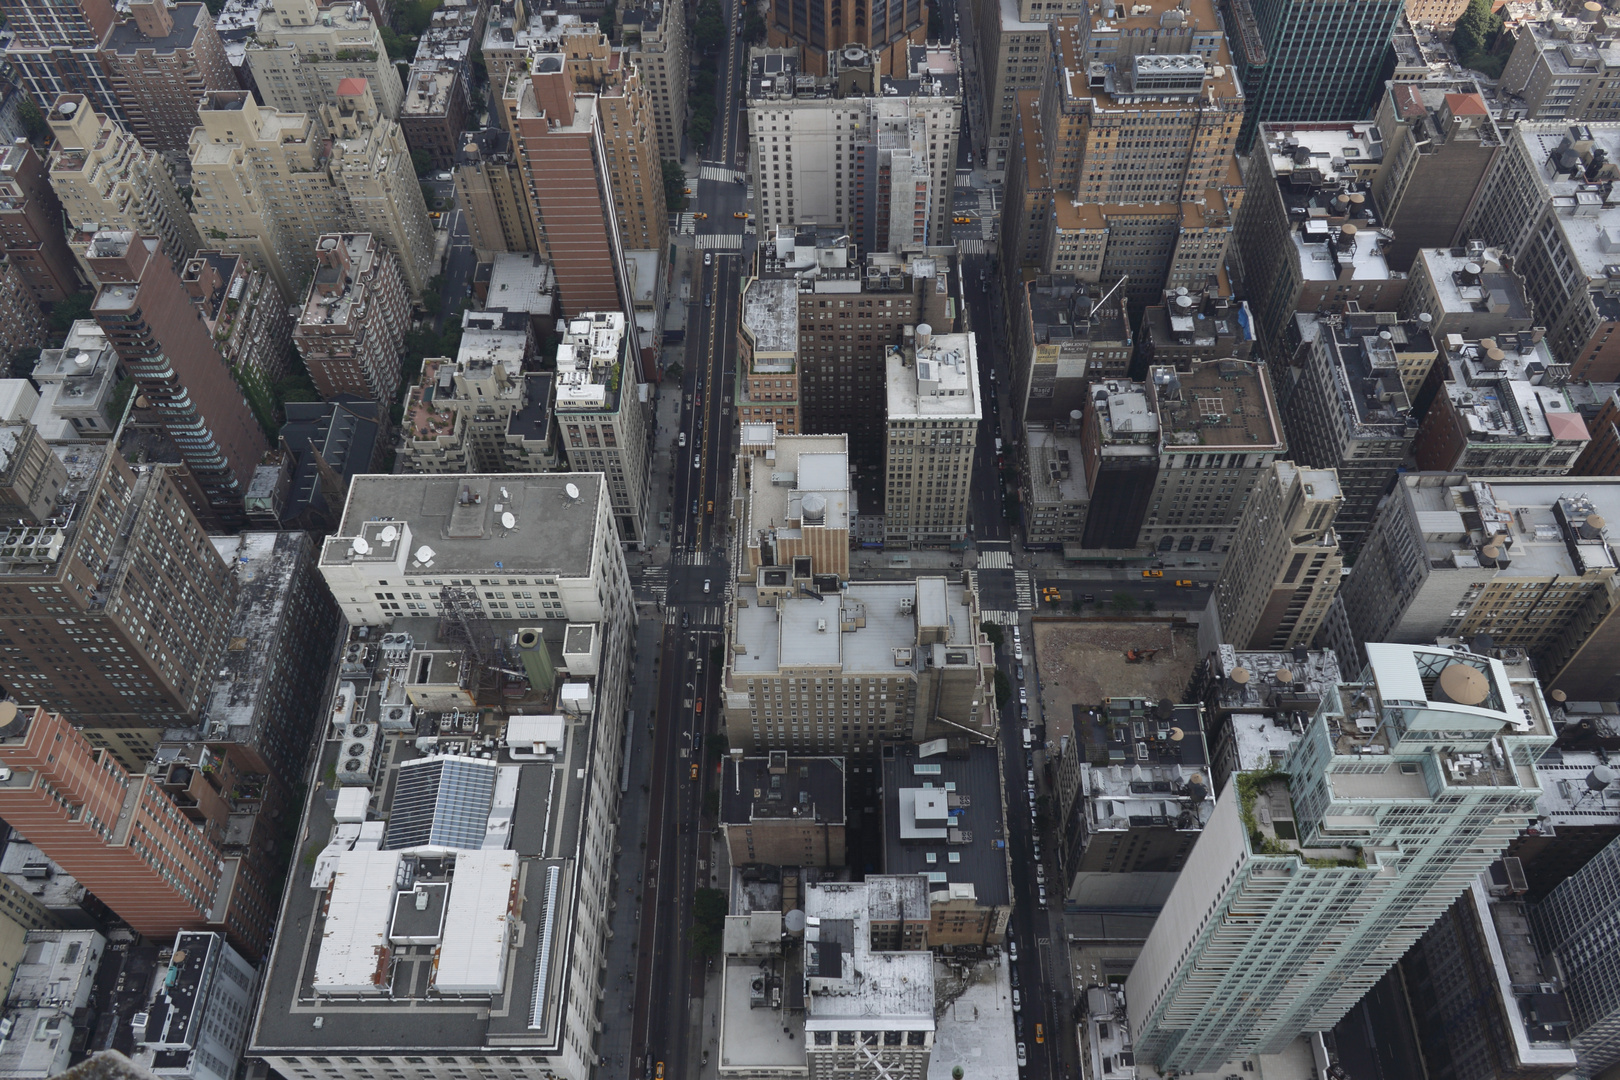 Empire State Building Richtung Madison Ave und Park Ave